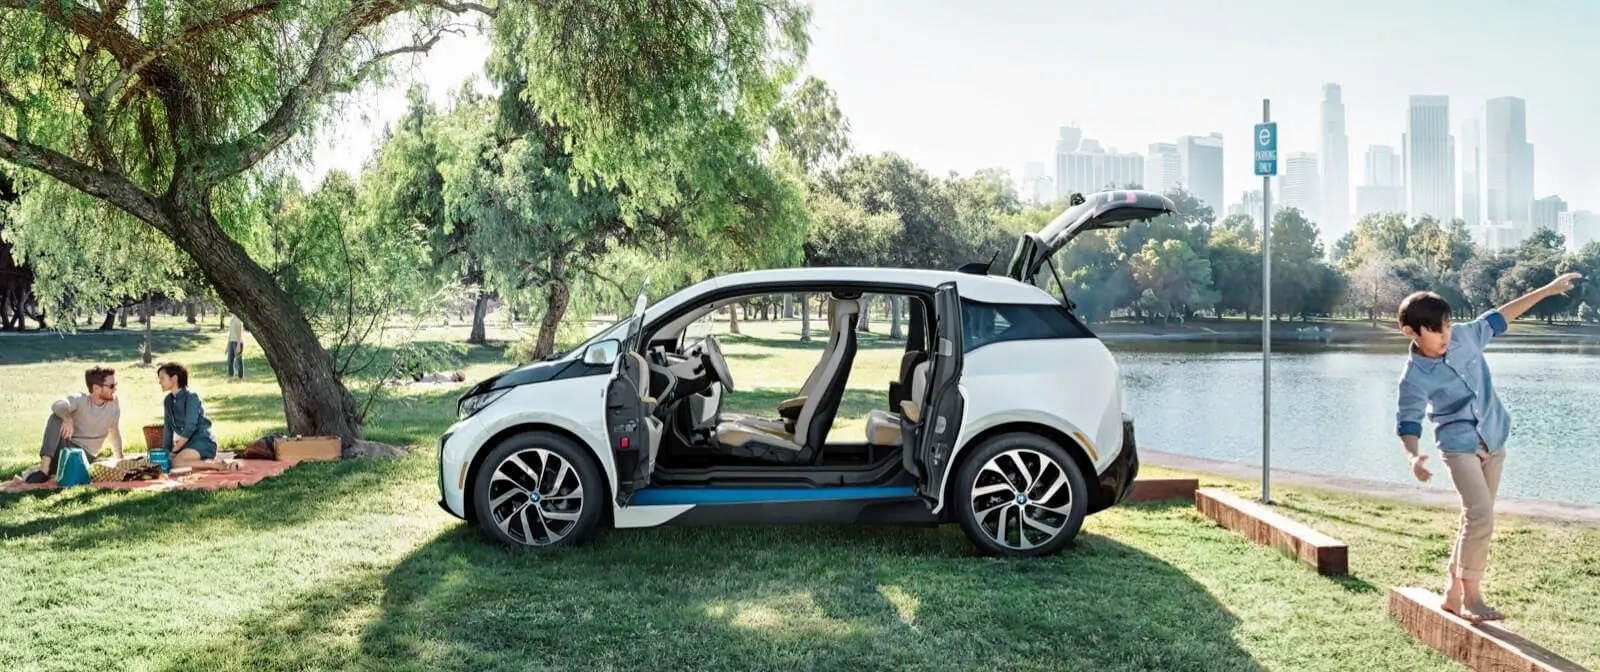 Europe Electric Car Sales Bmw I3 1 Again Vehicle Electrical System Control Units Location Thanks To The Massive Arrival Of 33 Kwh Norway 1014 Registered Earned Its Third Best Seller Title In Four Months